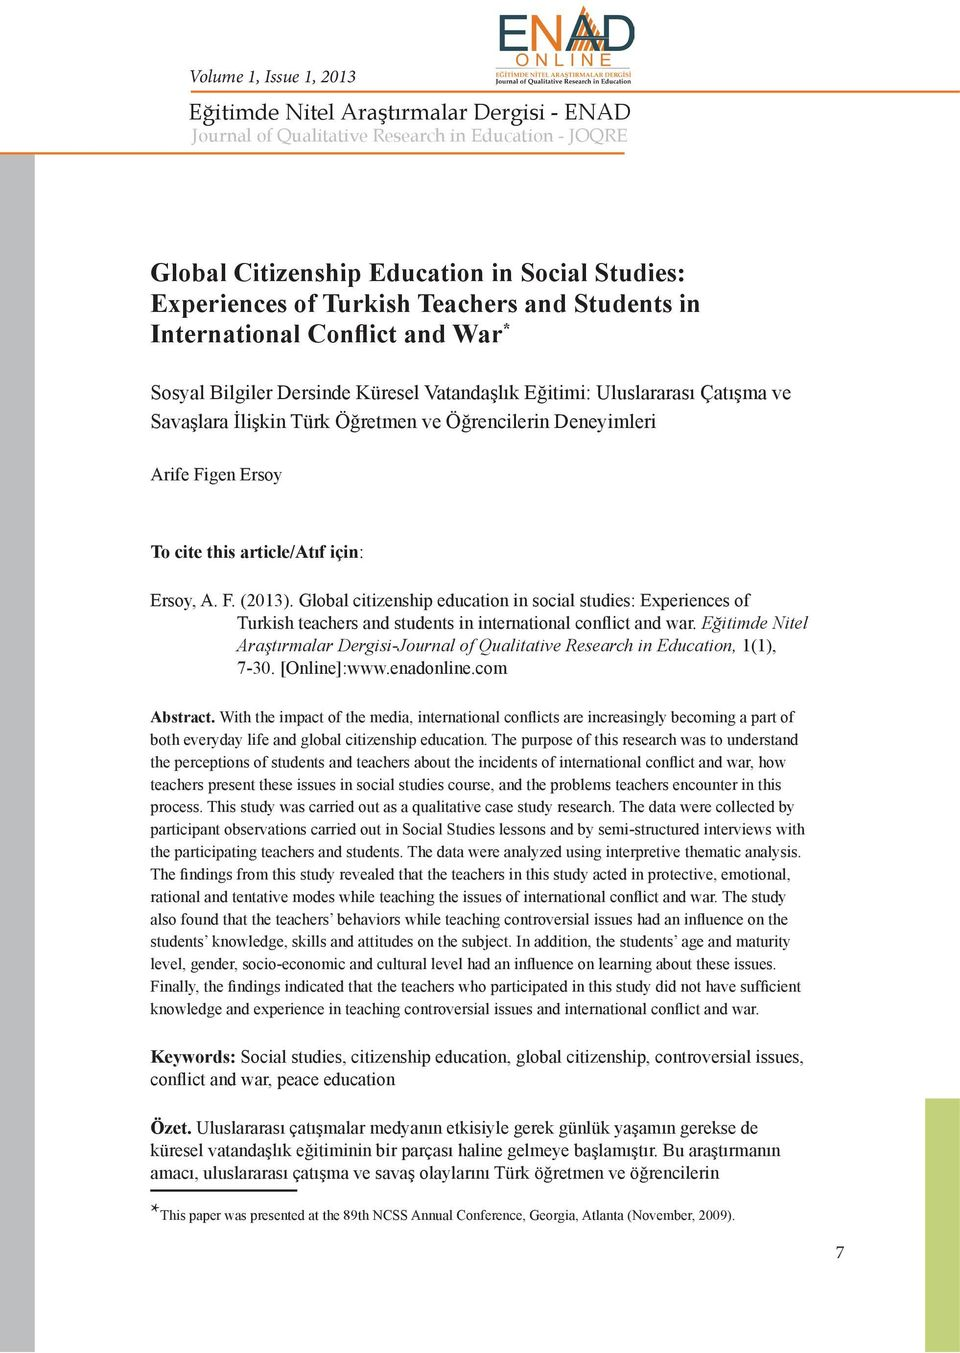 Global citizenship education in social studies: Experiences of Turkish teachers and students in international conflict and war.